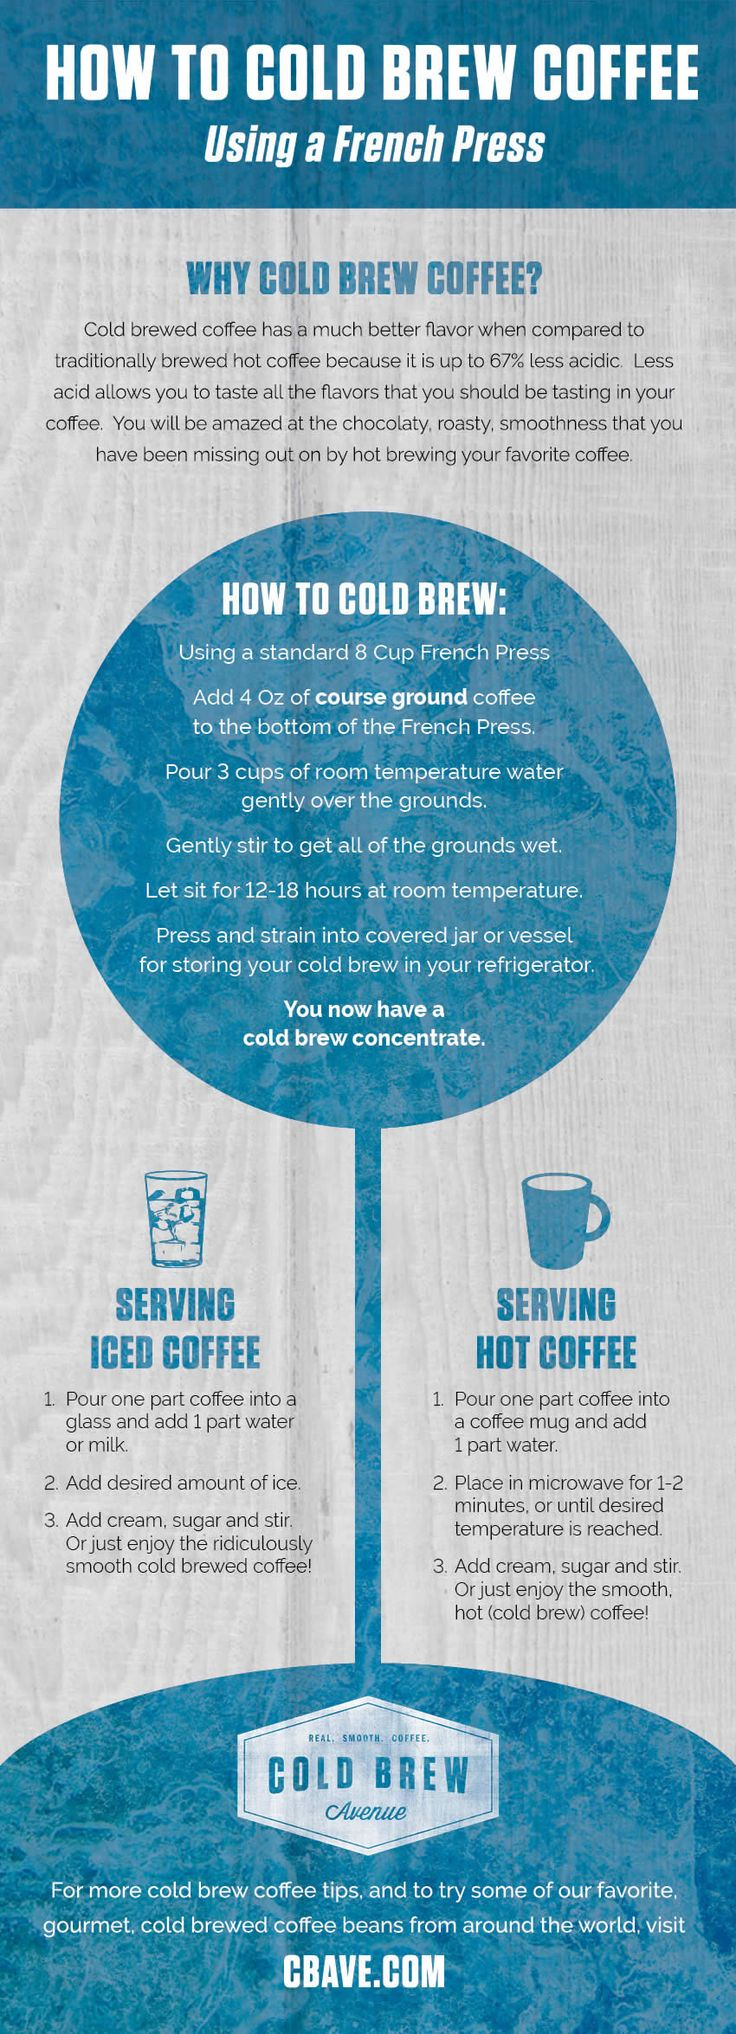 How to Cold Brew Coffee Using a French Press (Infographic)  Quick overview on cold brewing coffee using your French press.